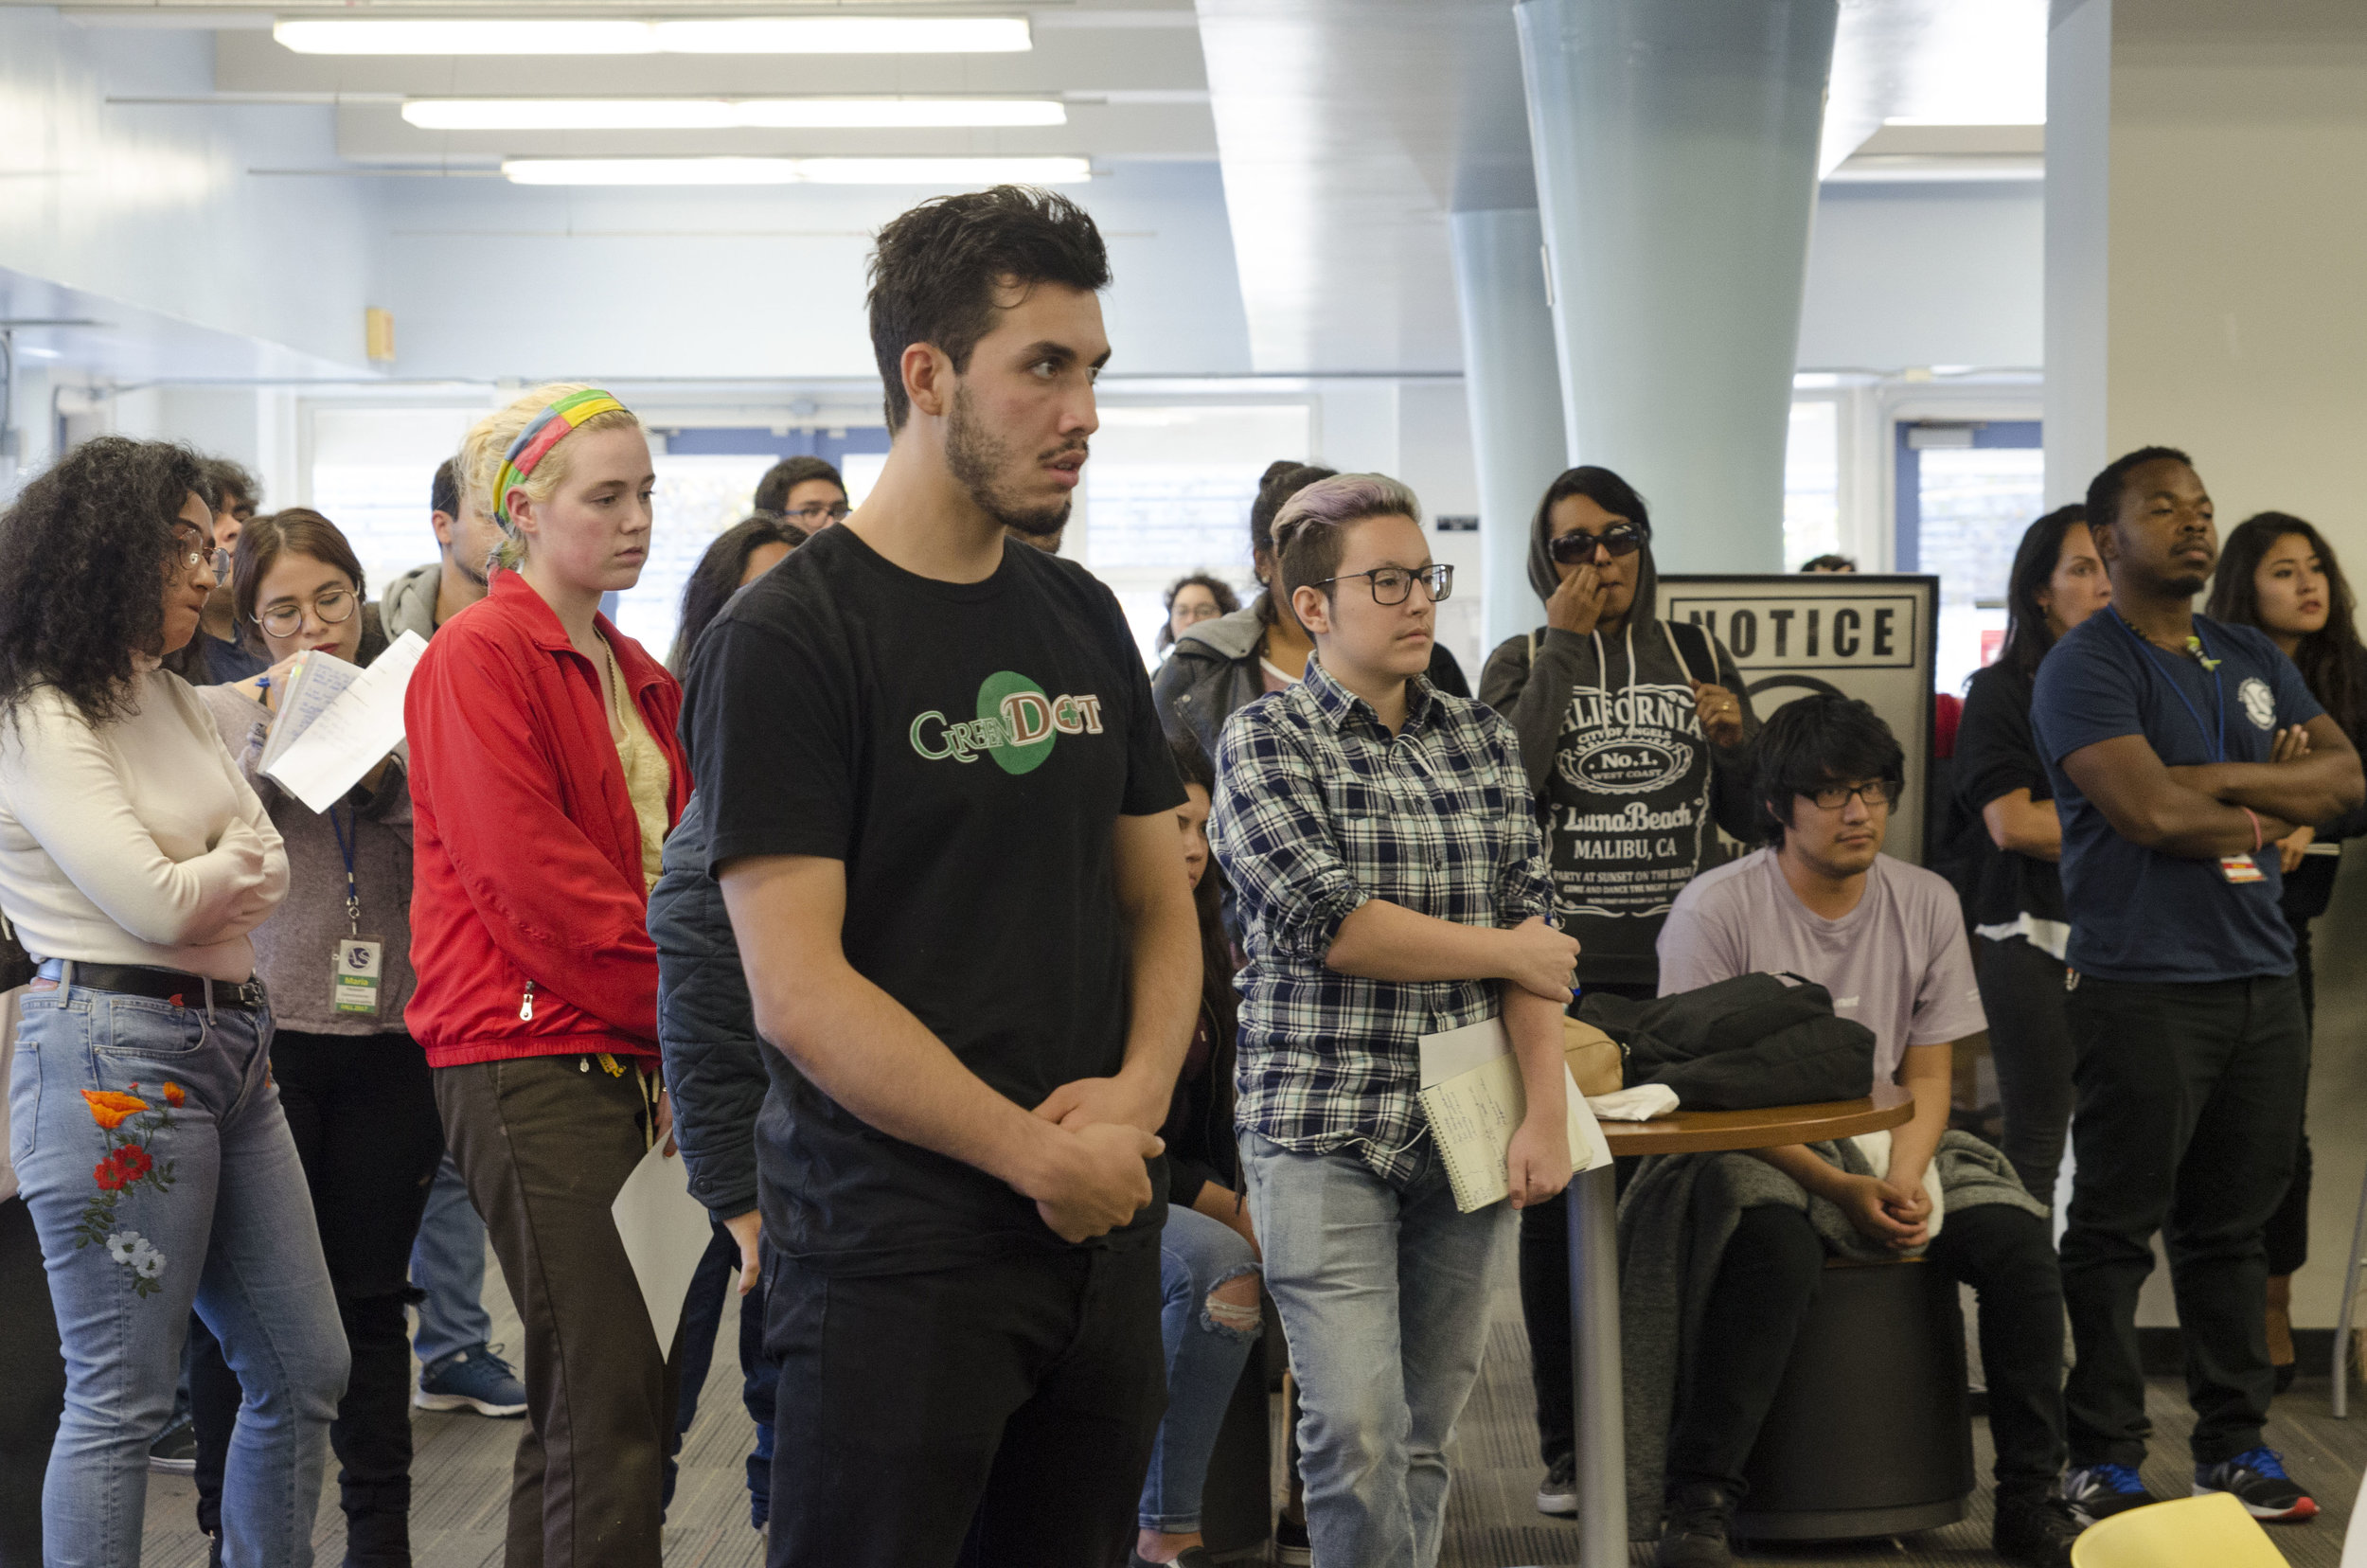 Several Santa Monica College students watch and listen to the A.S. meeting while some are lined up waiting for their chance to speak for three minutes each before the Associated Students Board during the AS meeting. Santa Monica College Cayton Center. Santa Monica, Calif. November 27, 2017. (Photo by: Diana Parra Garcia)